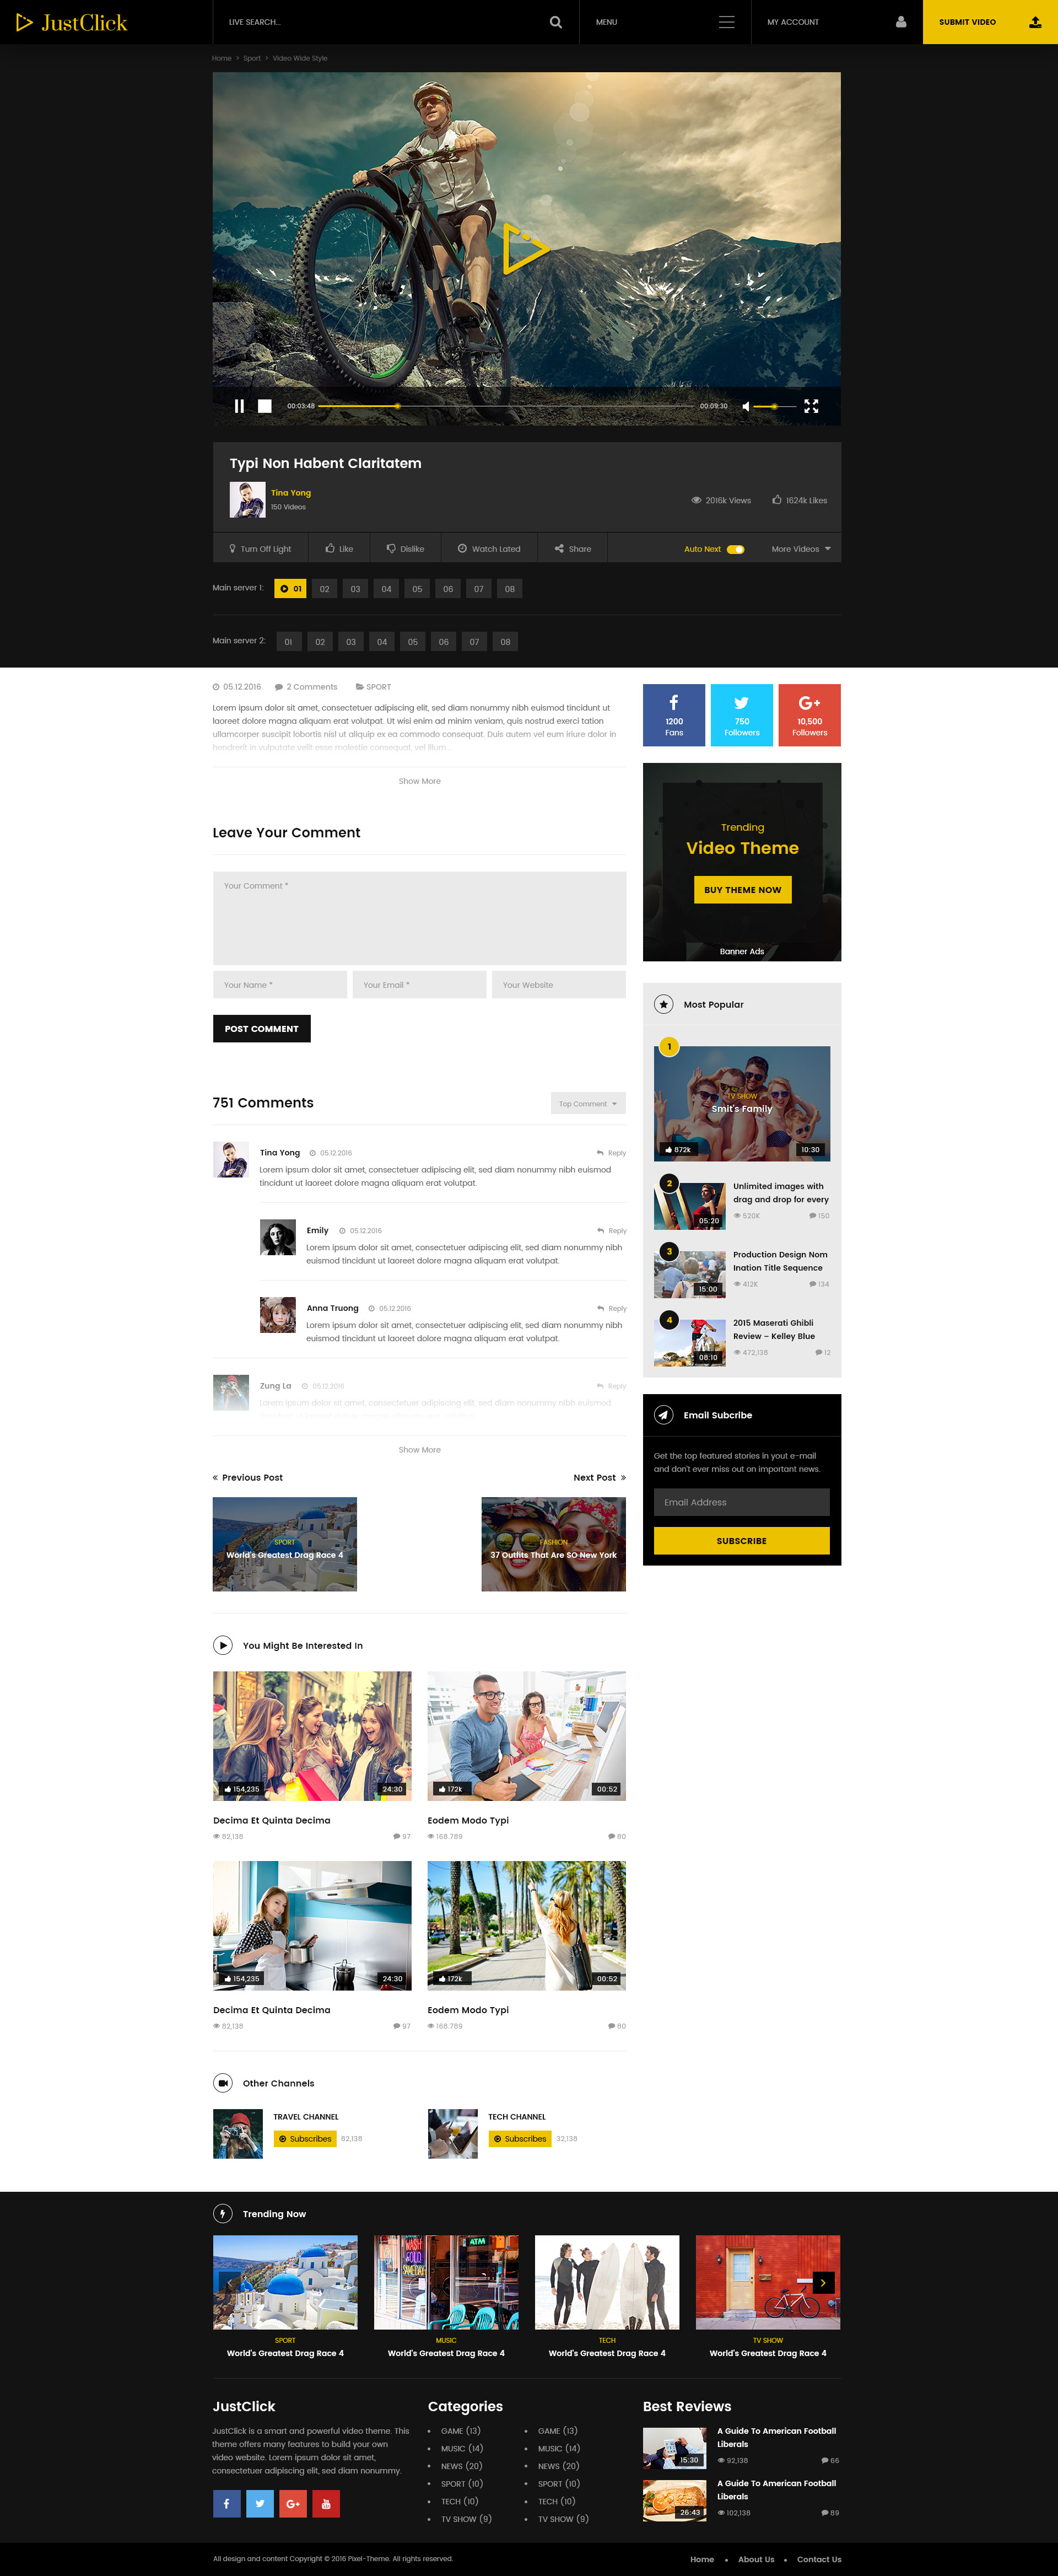 Justclick Powerful Video Template By Pixel Theme Themeforest